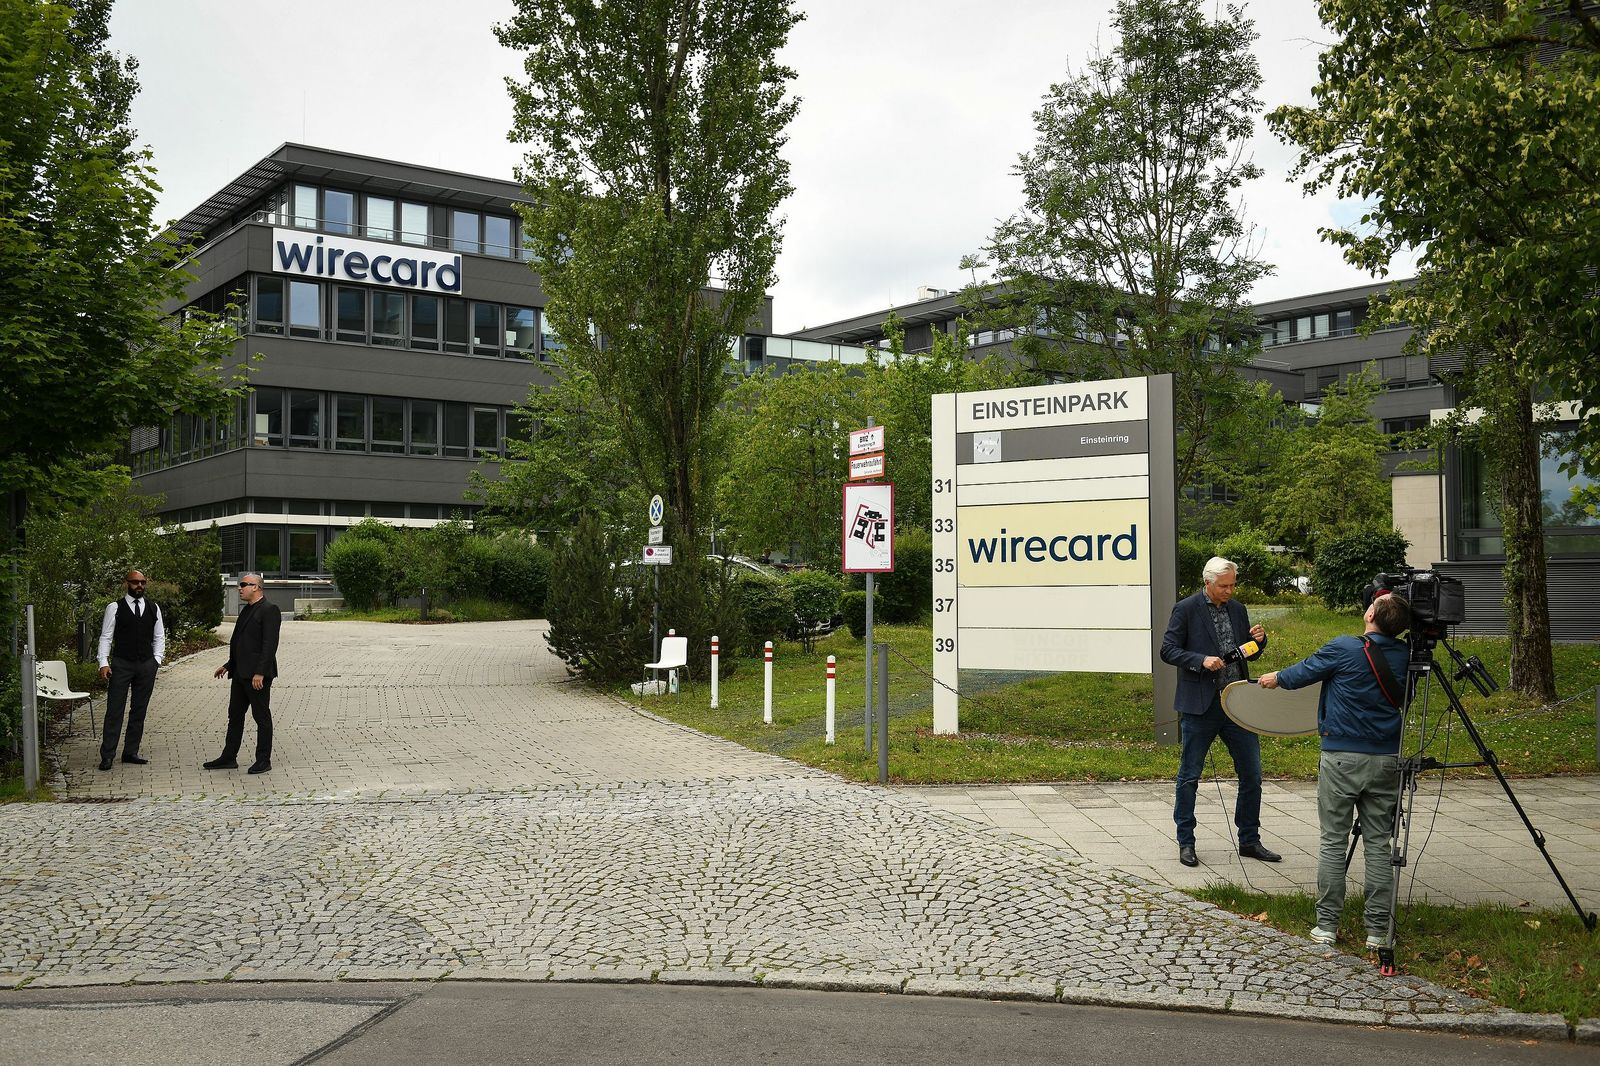 Wirecard files for insolvency, Aschheim, Germany - 25 Jun 2020